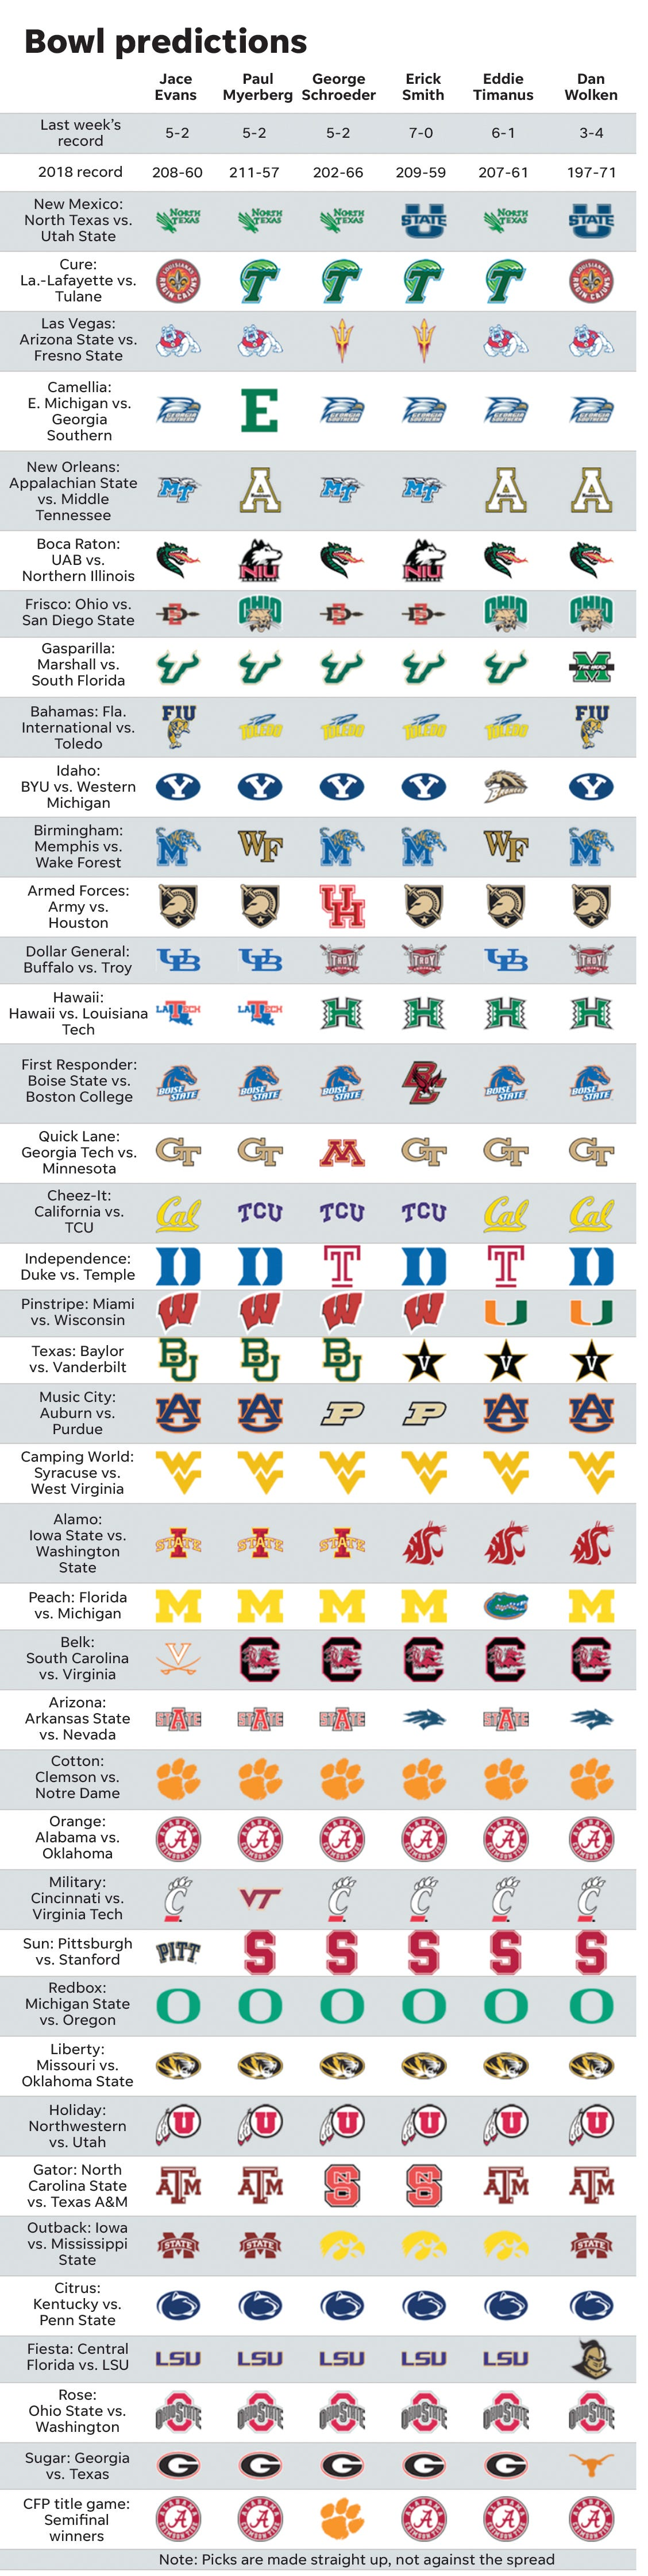 2018 Bowl Schedule >> College Football Bowl Game Staff Picks For Every Postseason Matchup